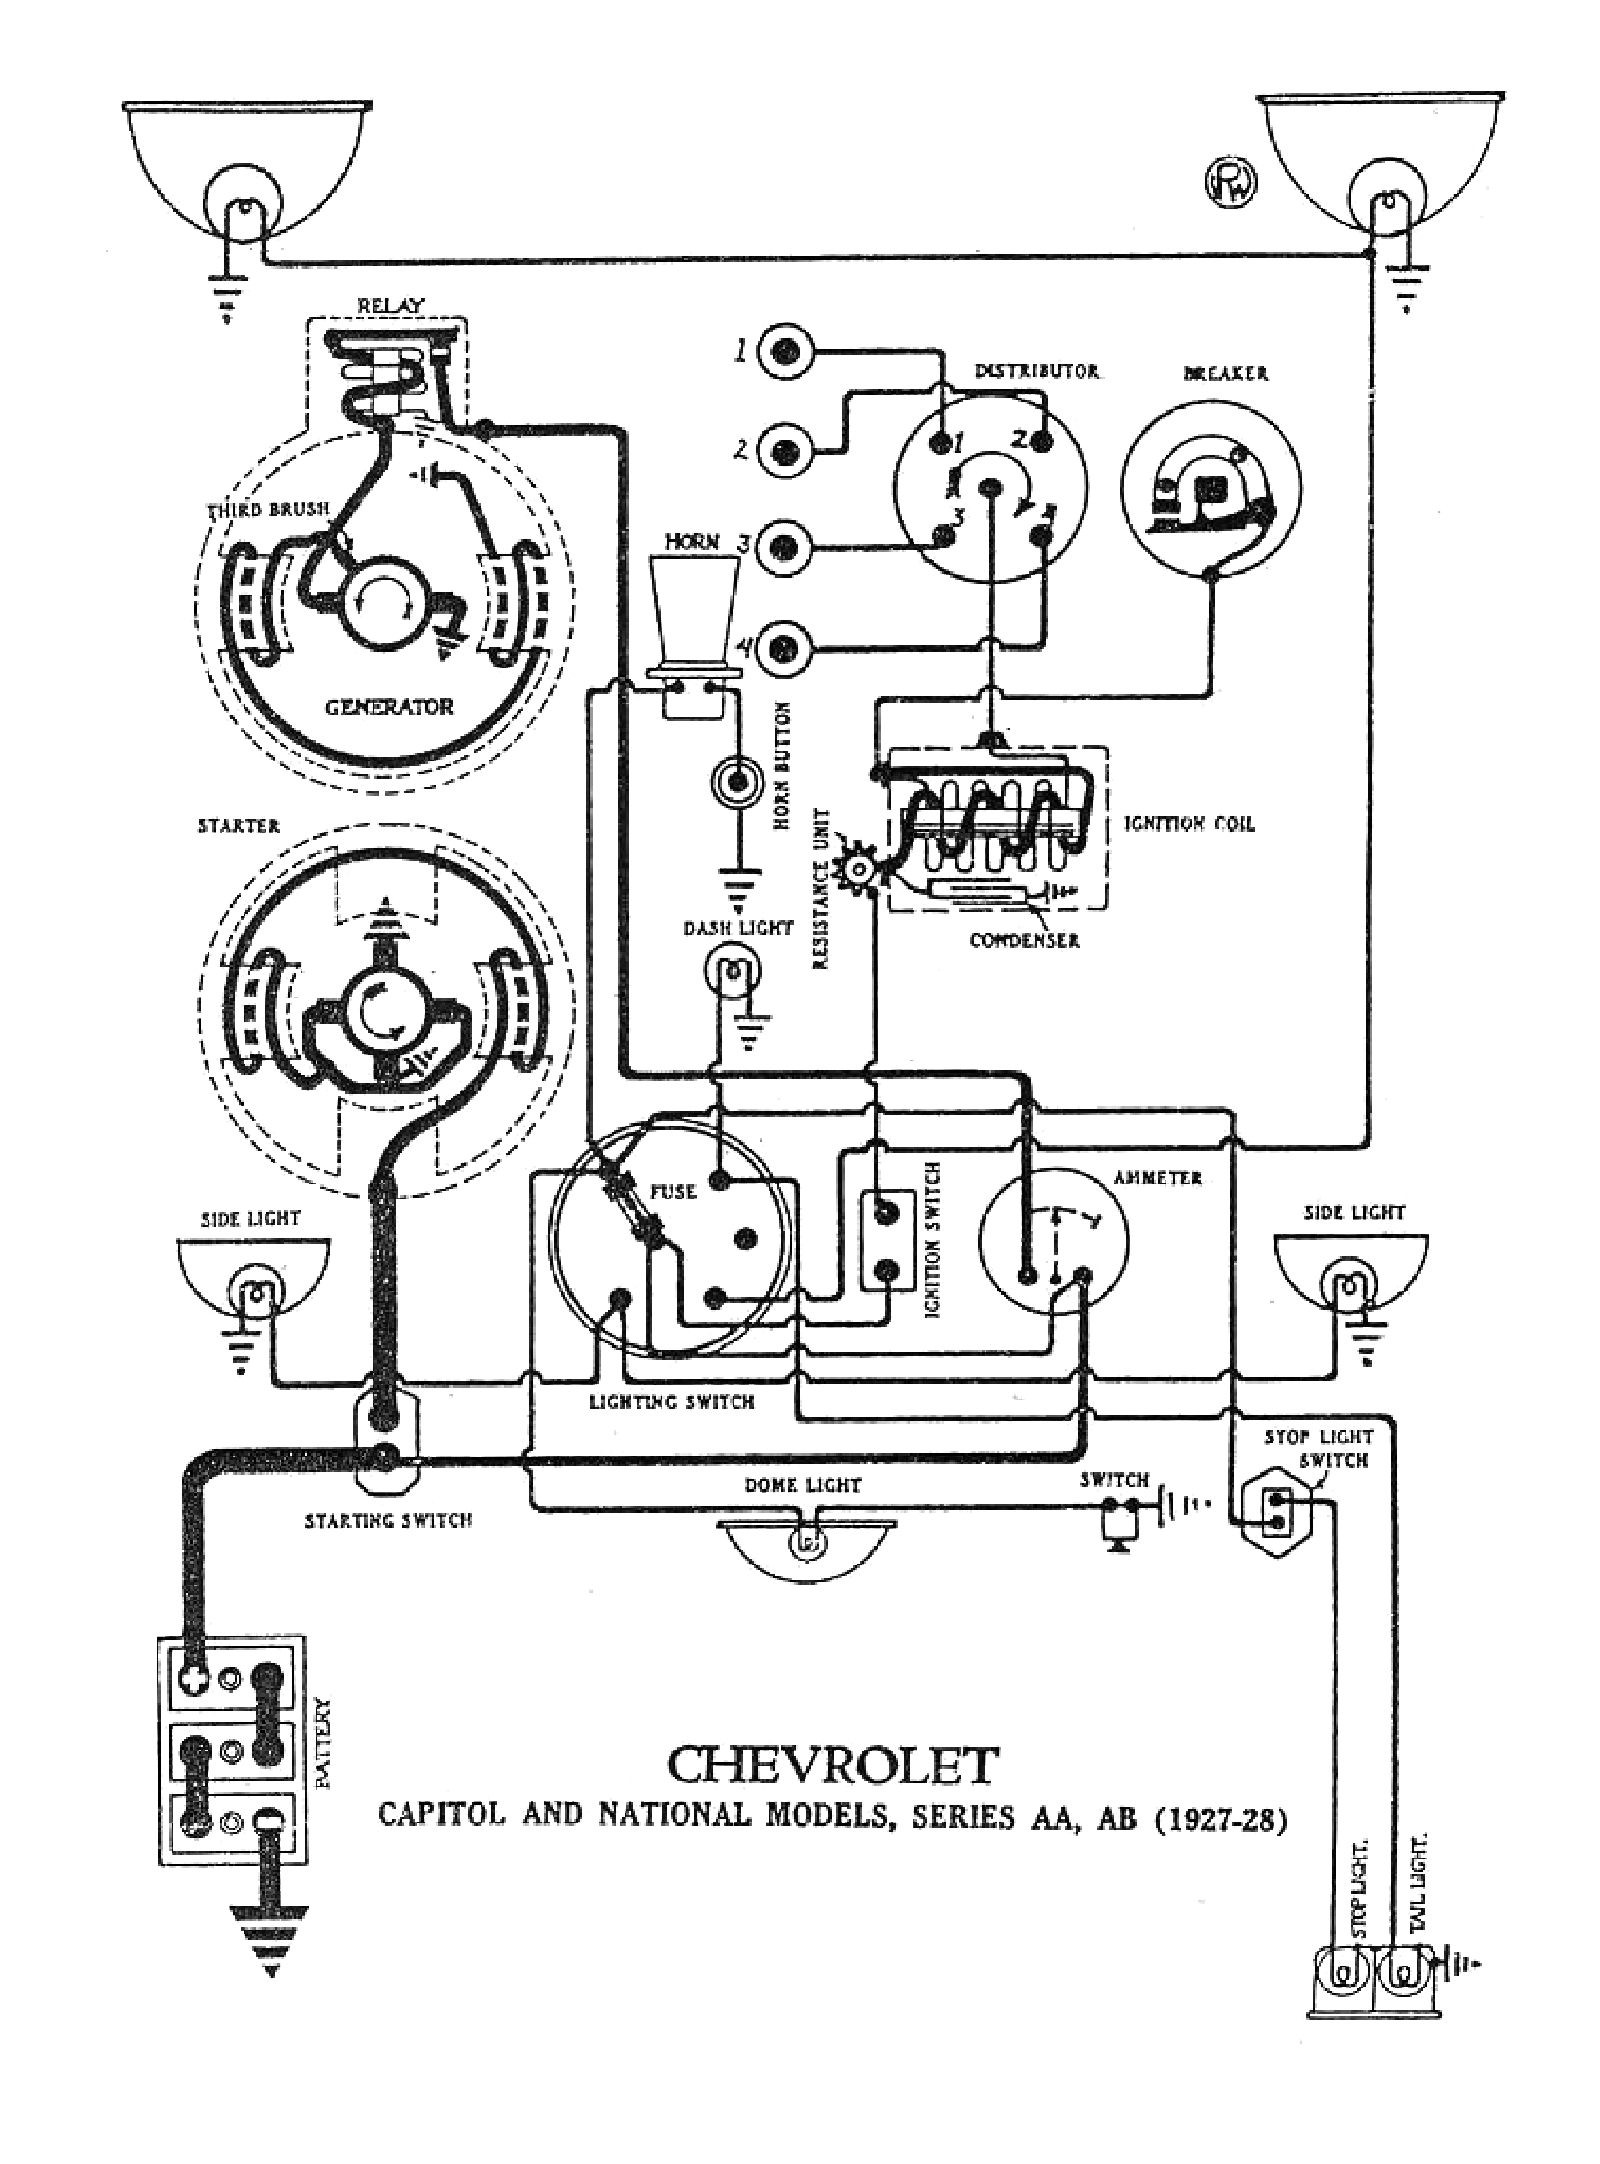 1998 Chevy S10 2 2 Engine Diagram Wiring Diagrams Of 1998 Chevy S10 2 2  Engine